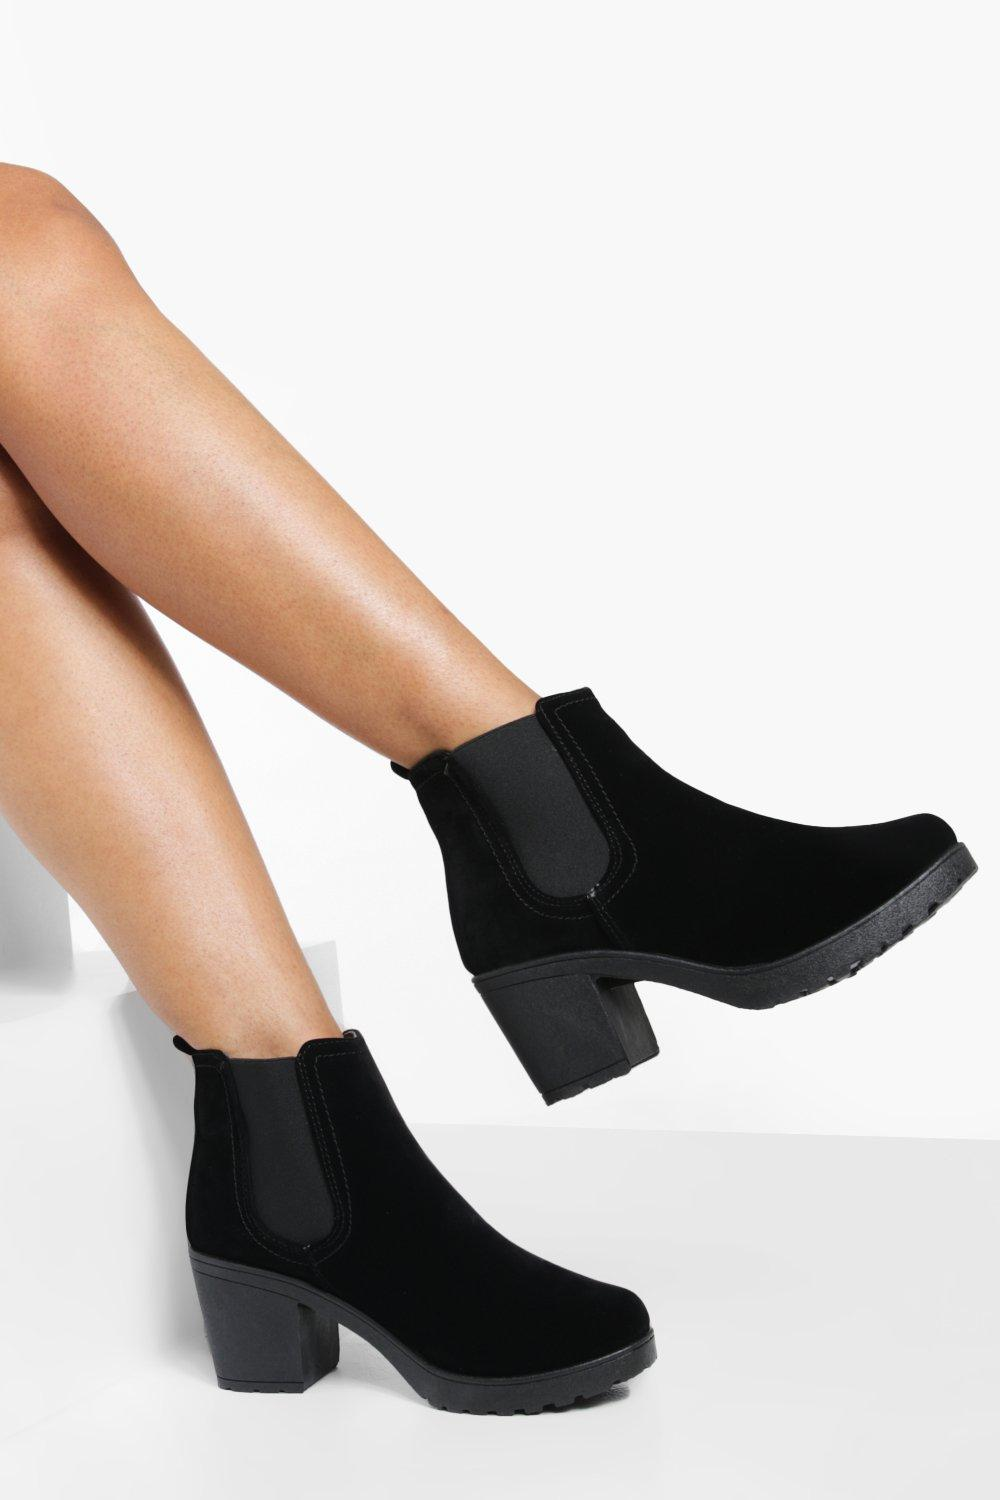 6ed40091887b Womens Black Block Heel Suedette Chelsea Boots. Hover to zoom